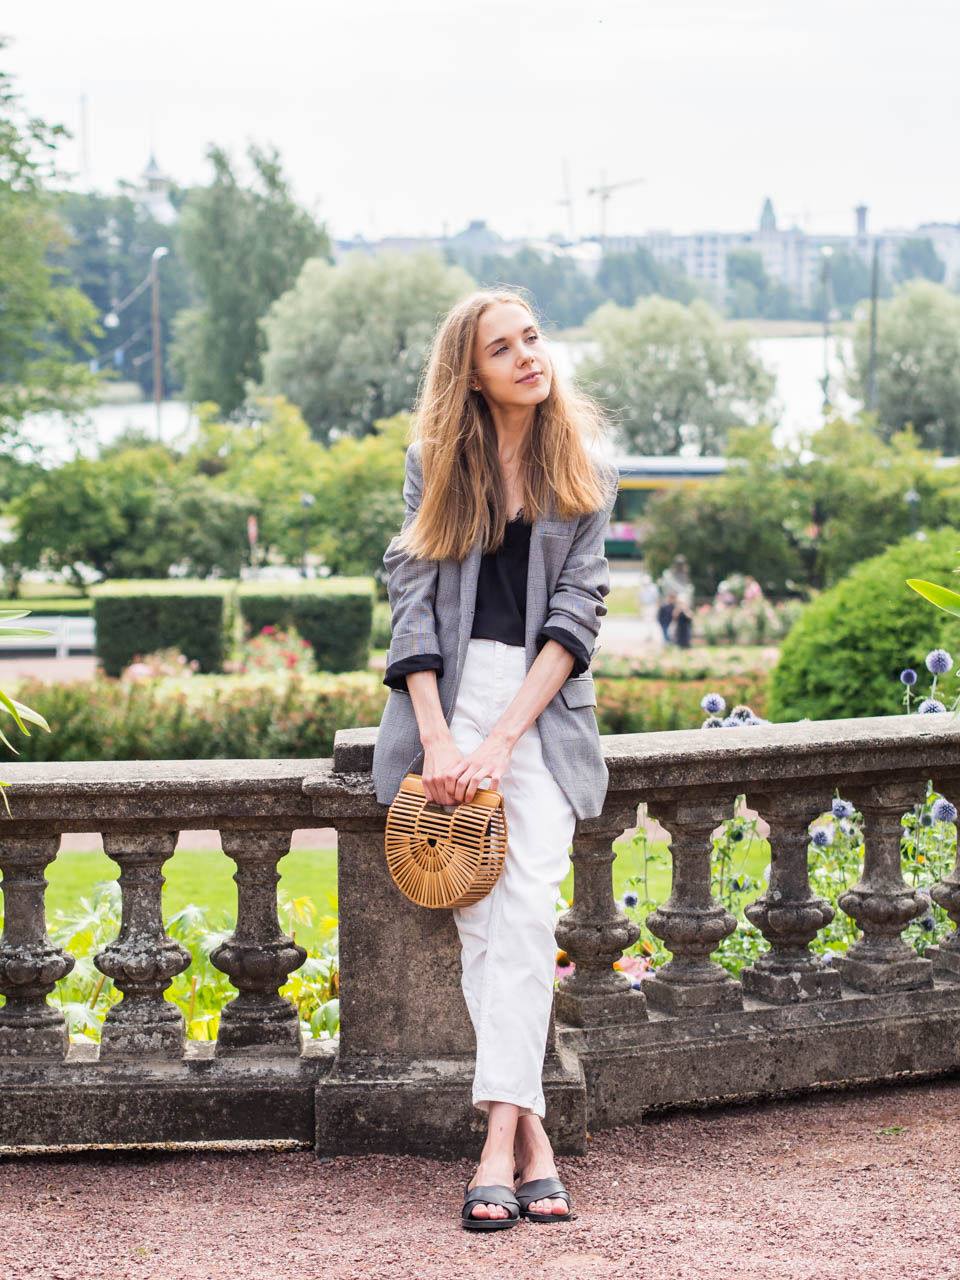 fashion-blogger-autumn-outfit-inspiration-muoti-blogi-syksy-inspiraatio-bleiseri